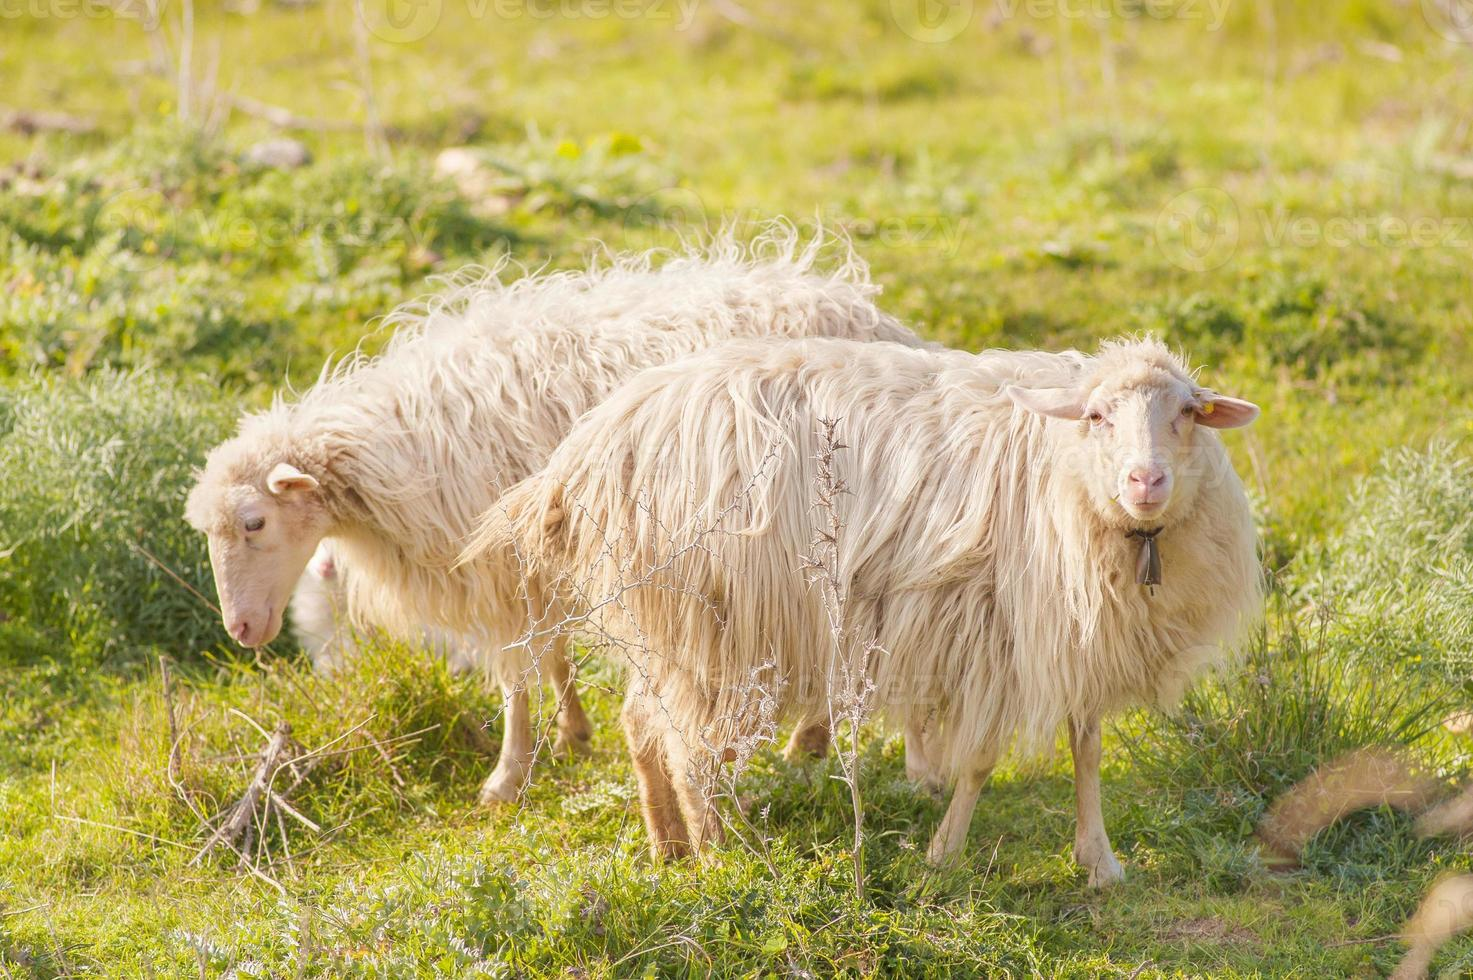 two sheep opposing in the grass photo